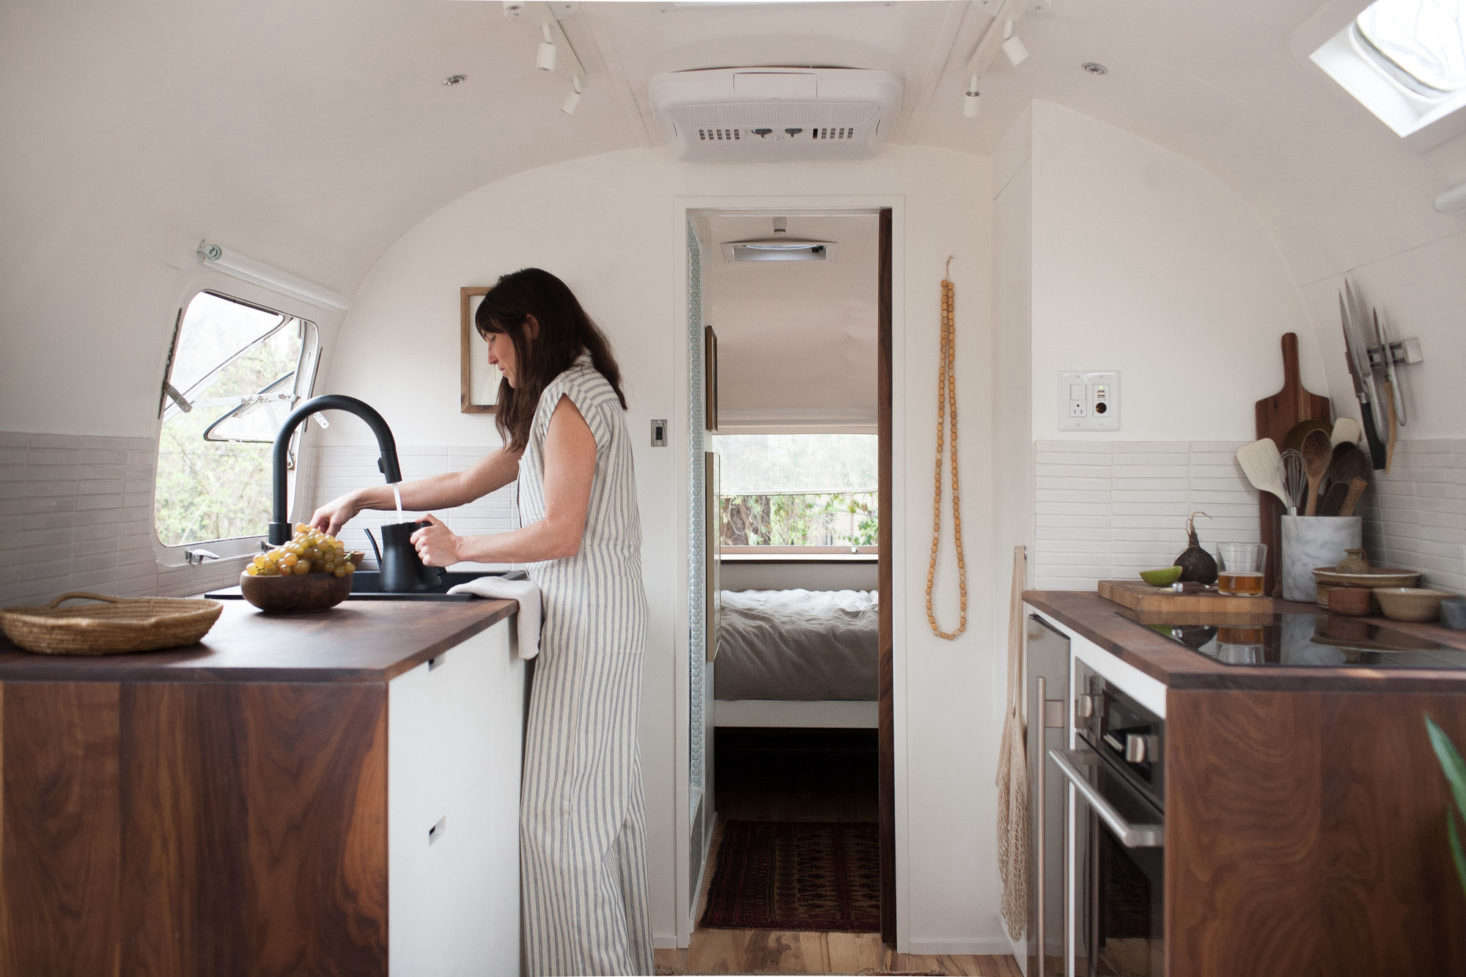 The Modern Caravan: A Vintage Airstream Transformed